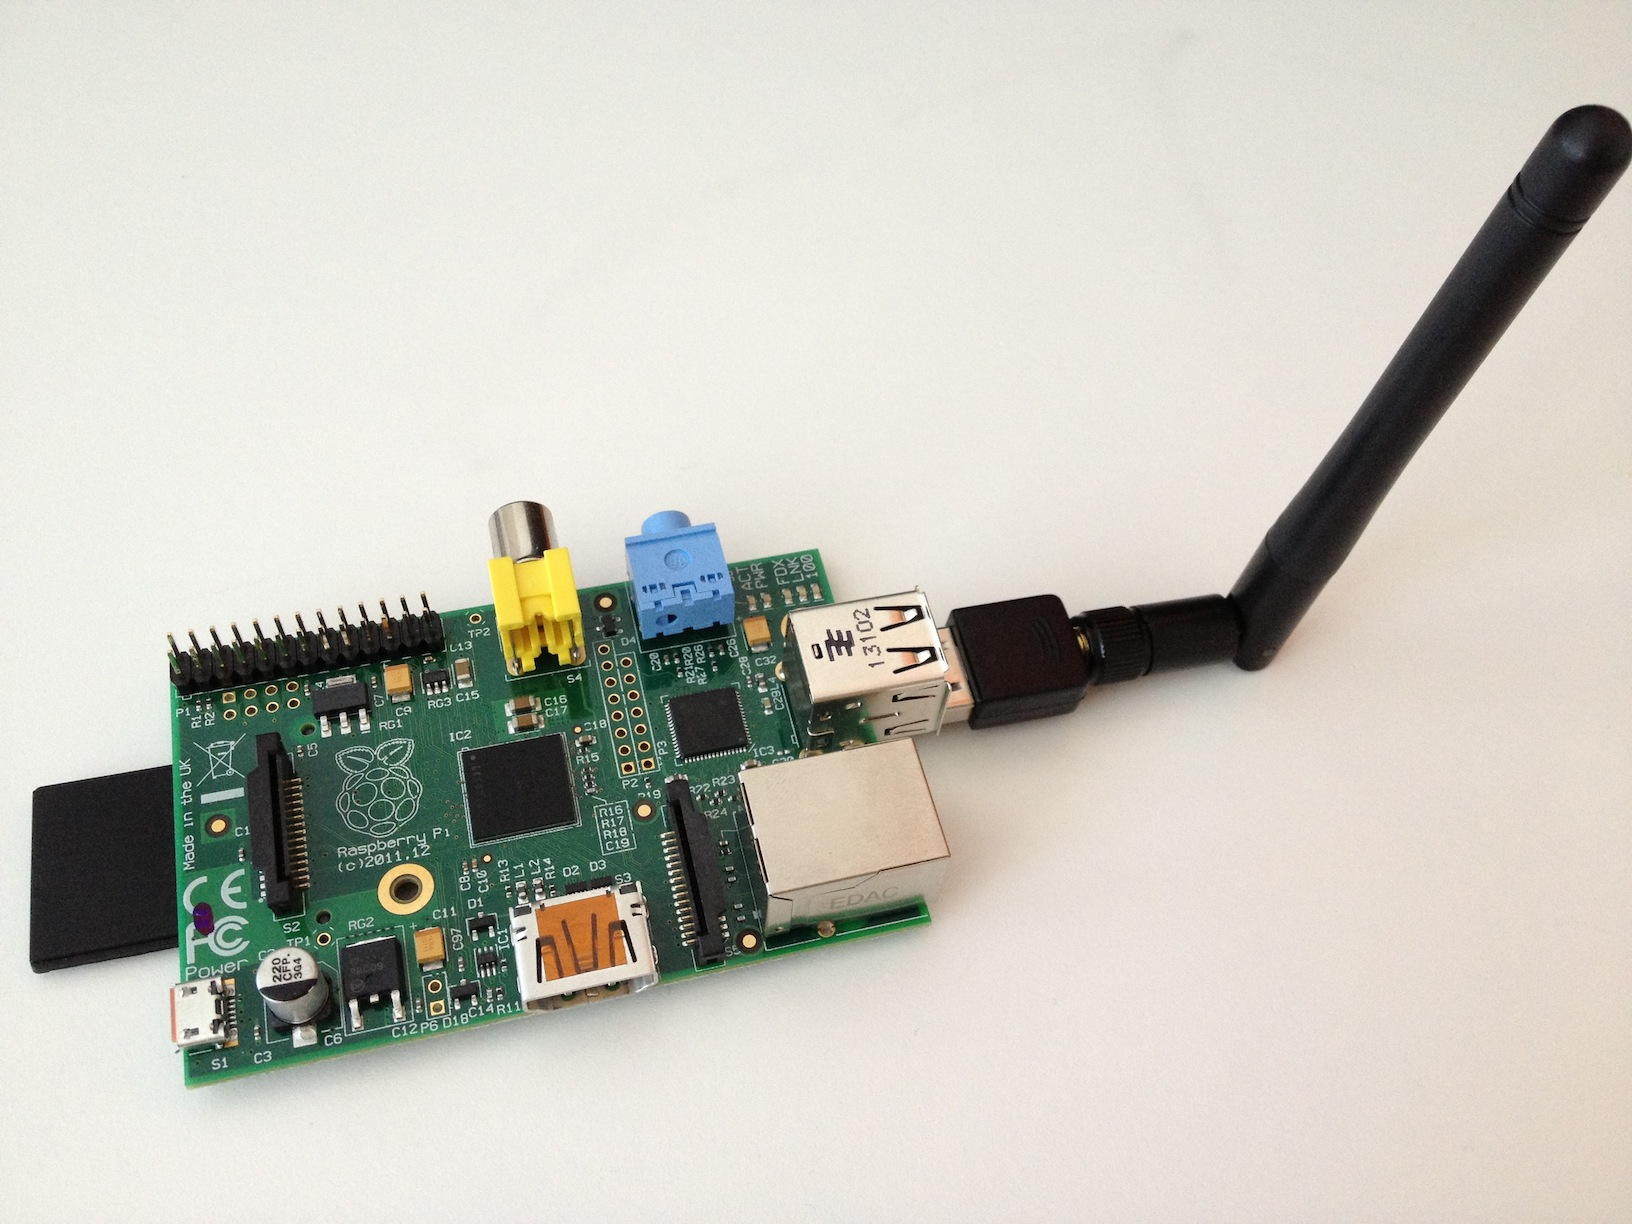 New wifi adapter has arrived! – RPI